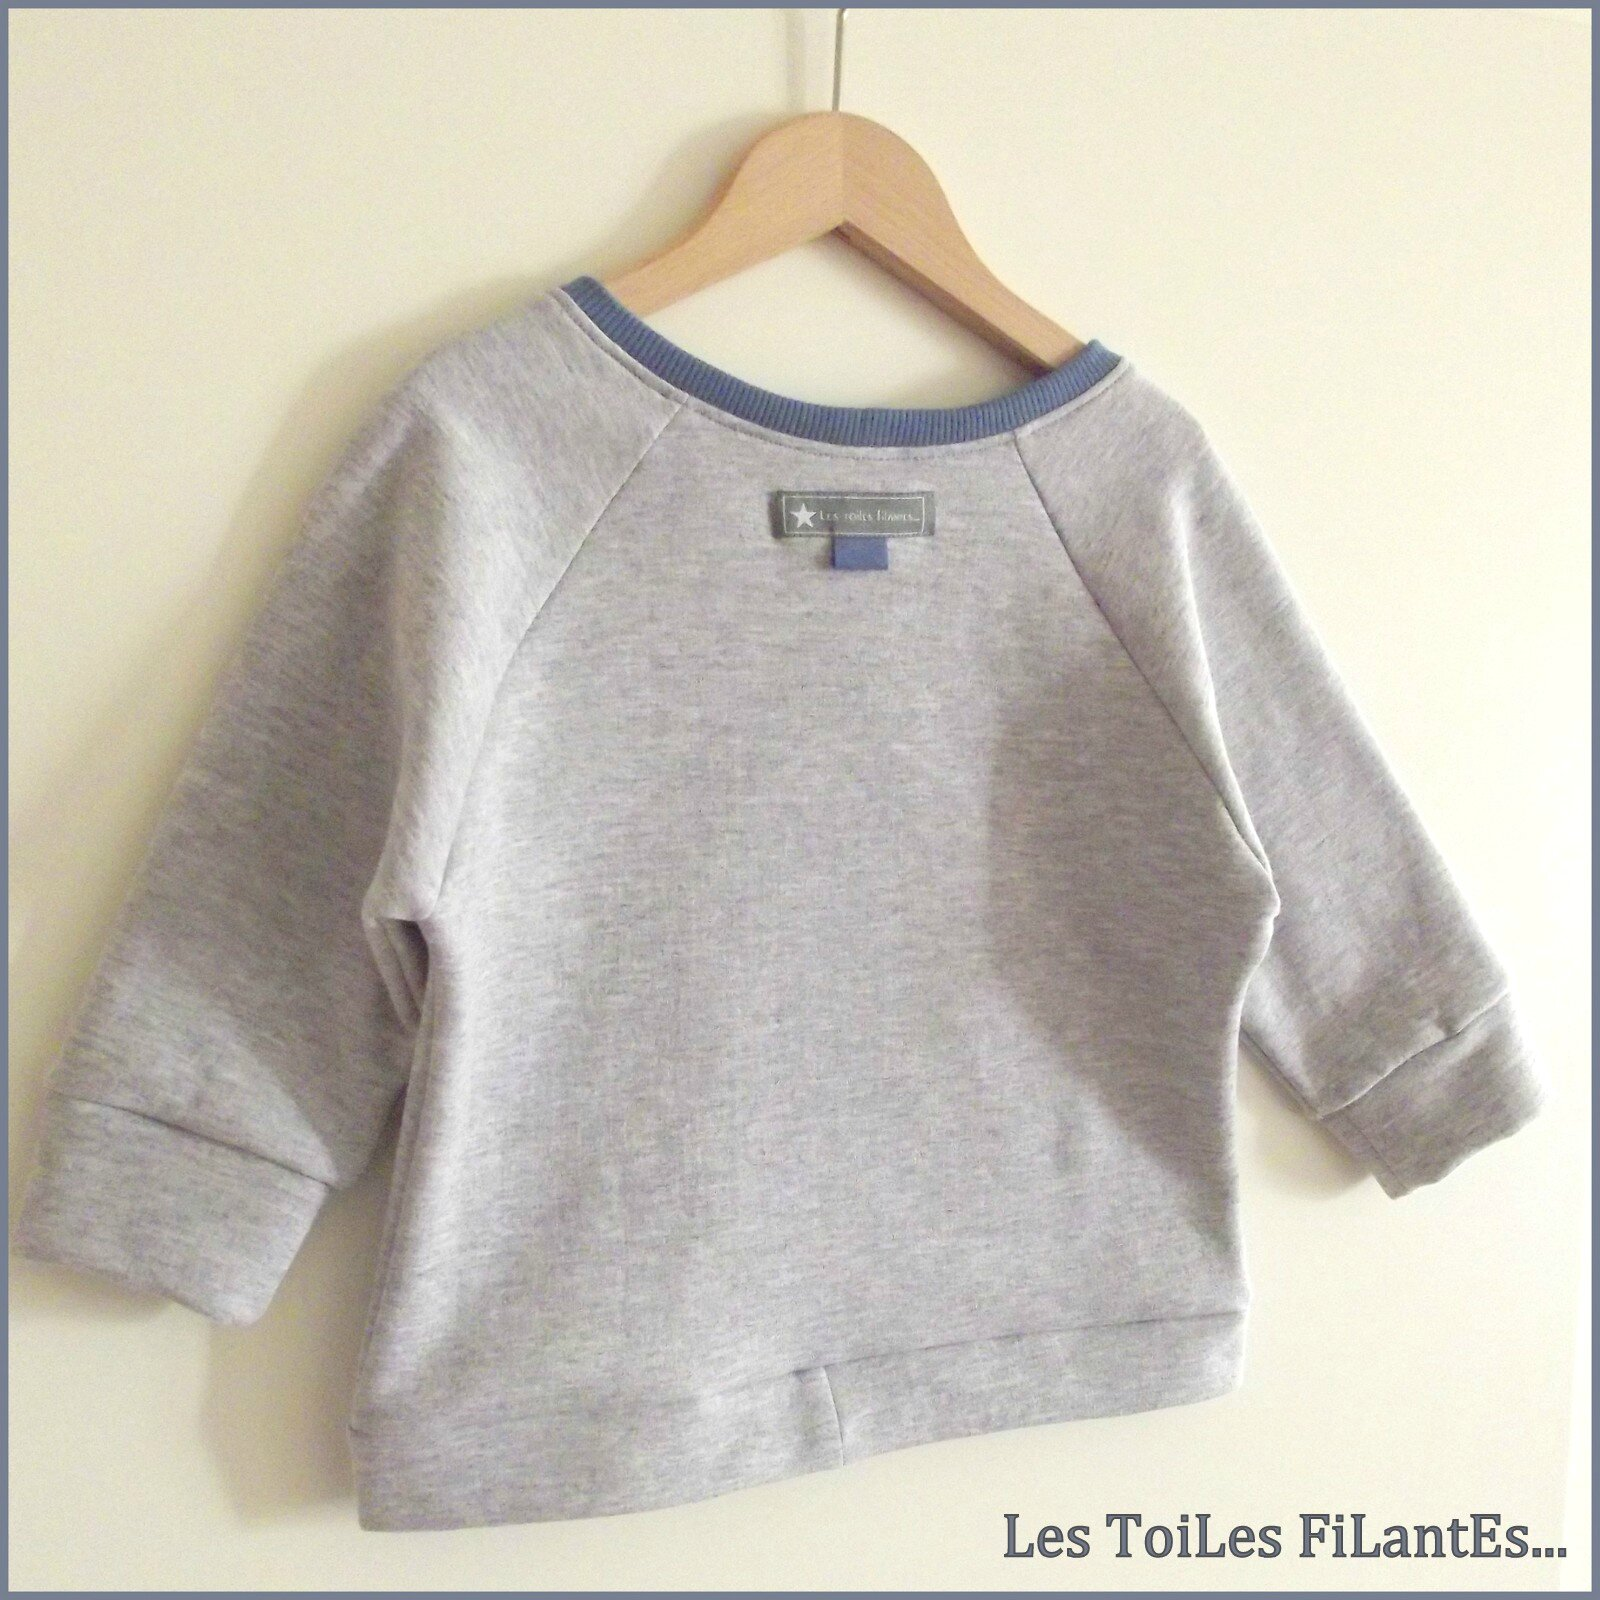 19-Ensemble jean sweat et tee-shirt bleu gris Aur�le13